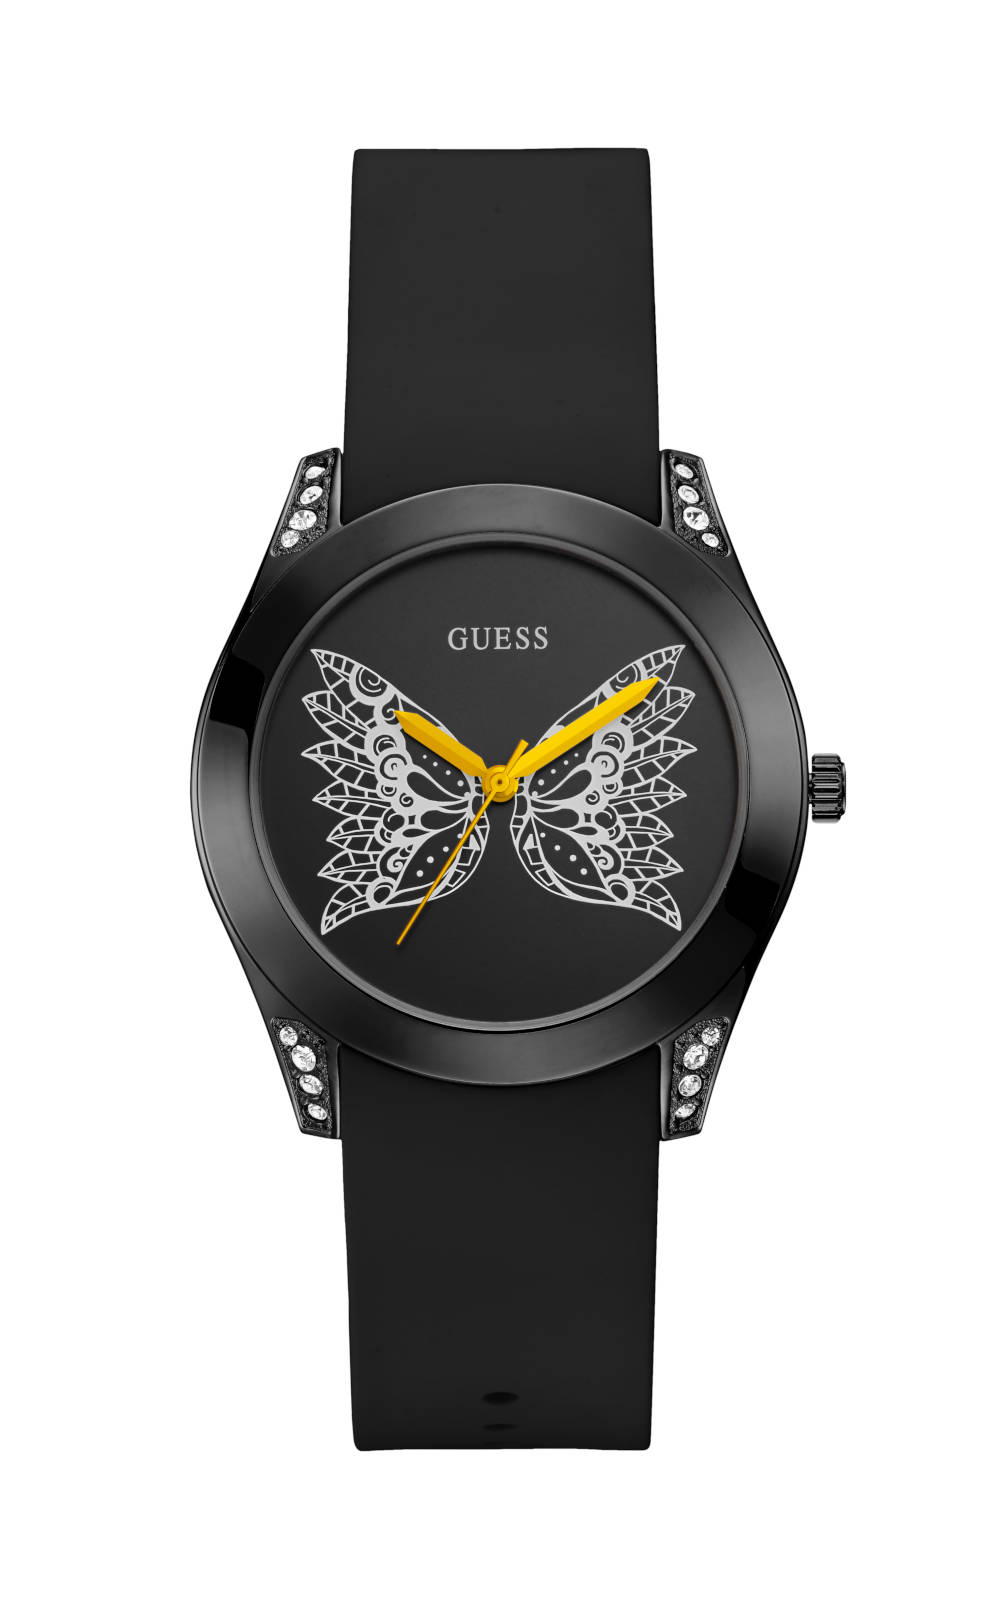 GUESS LIMITED EDITION